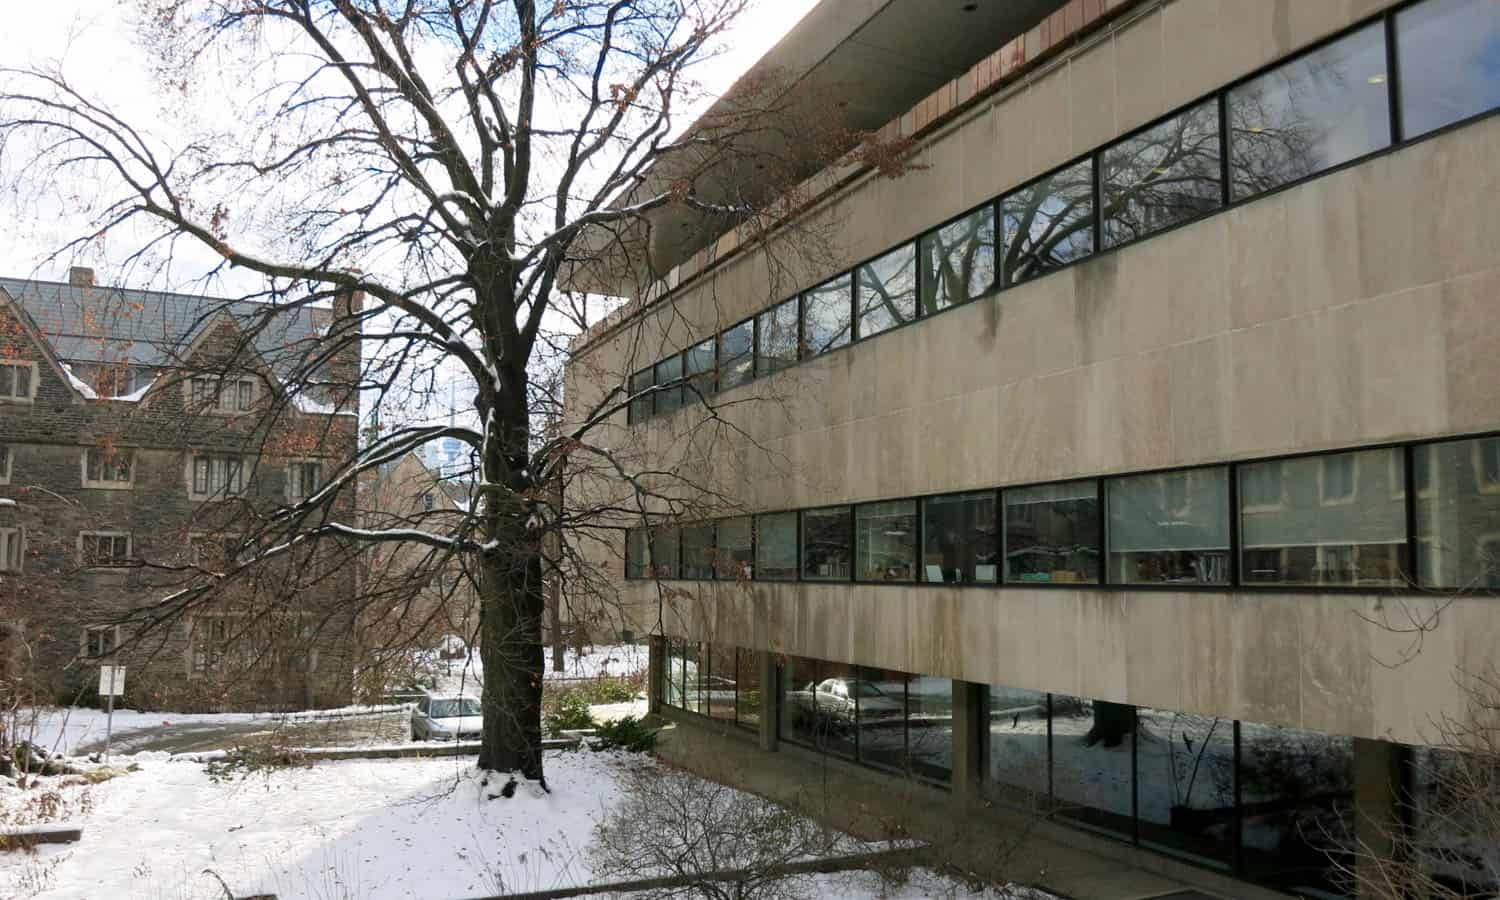 Ribbon windows on the east elevation provide views of Burwash Residence (1931) and the Lester B. Pearson Garden for Peace and Understanding